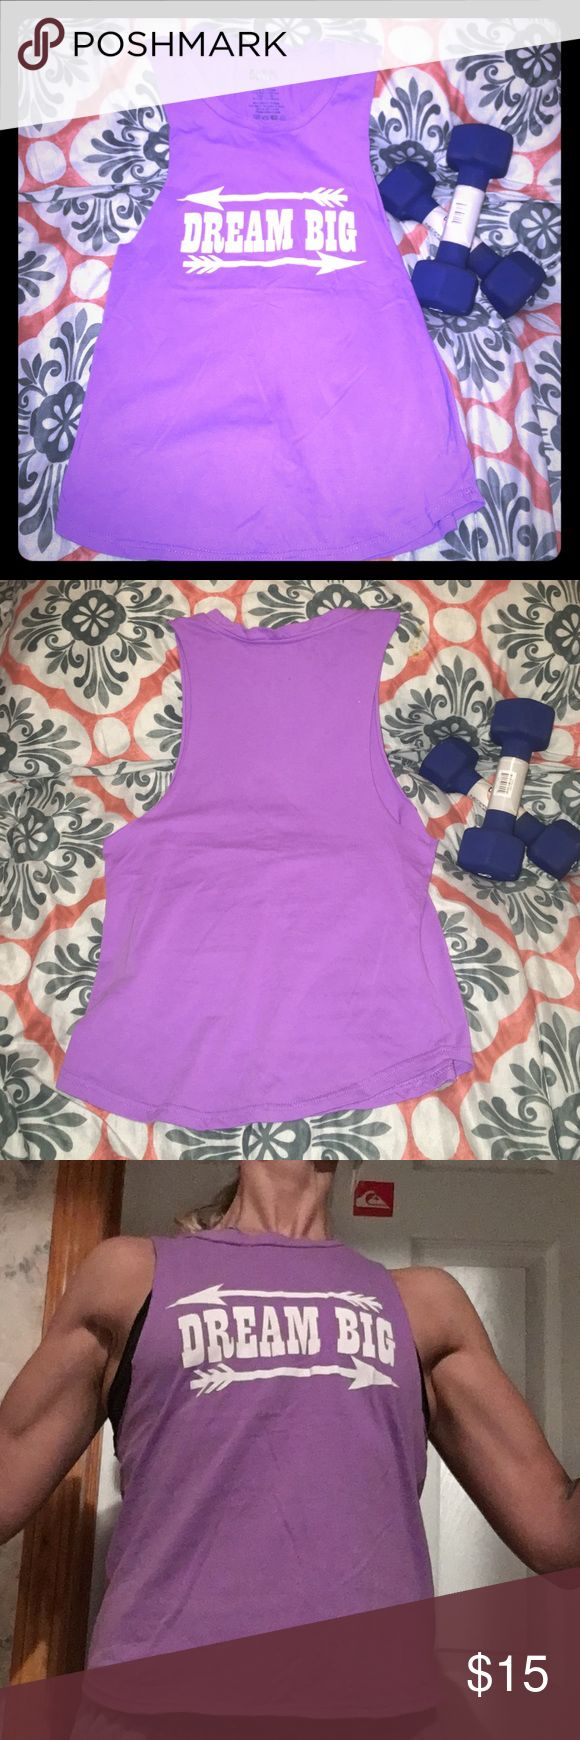 """NWOT """"Dream Big"""" Muscle / Workout Tank Size Small This tank is awesome for showing off your guns or side tattoos! I bought this for a photo shoot but it didn't match the scene. Never worn. Everything must go make an offer. Tops Tank Tops"""